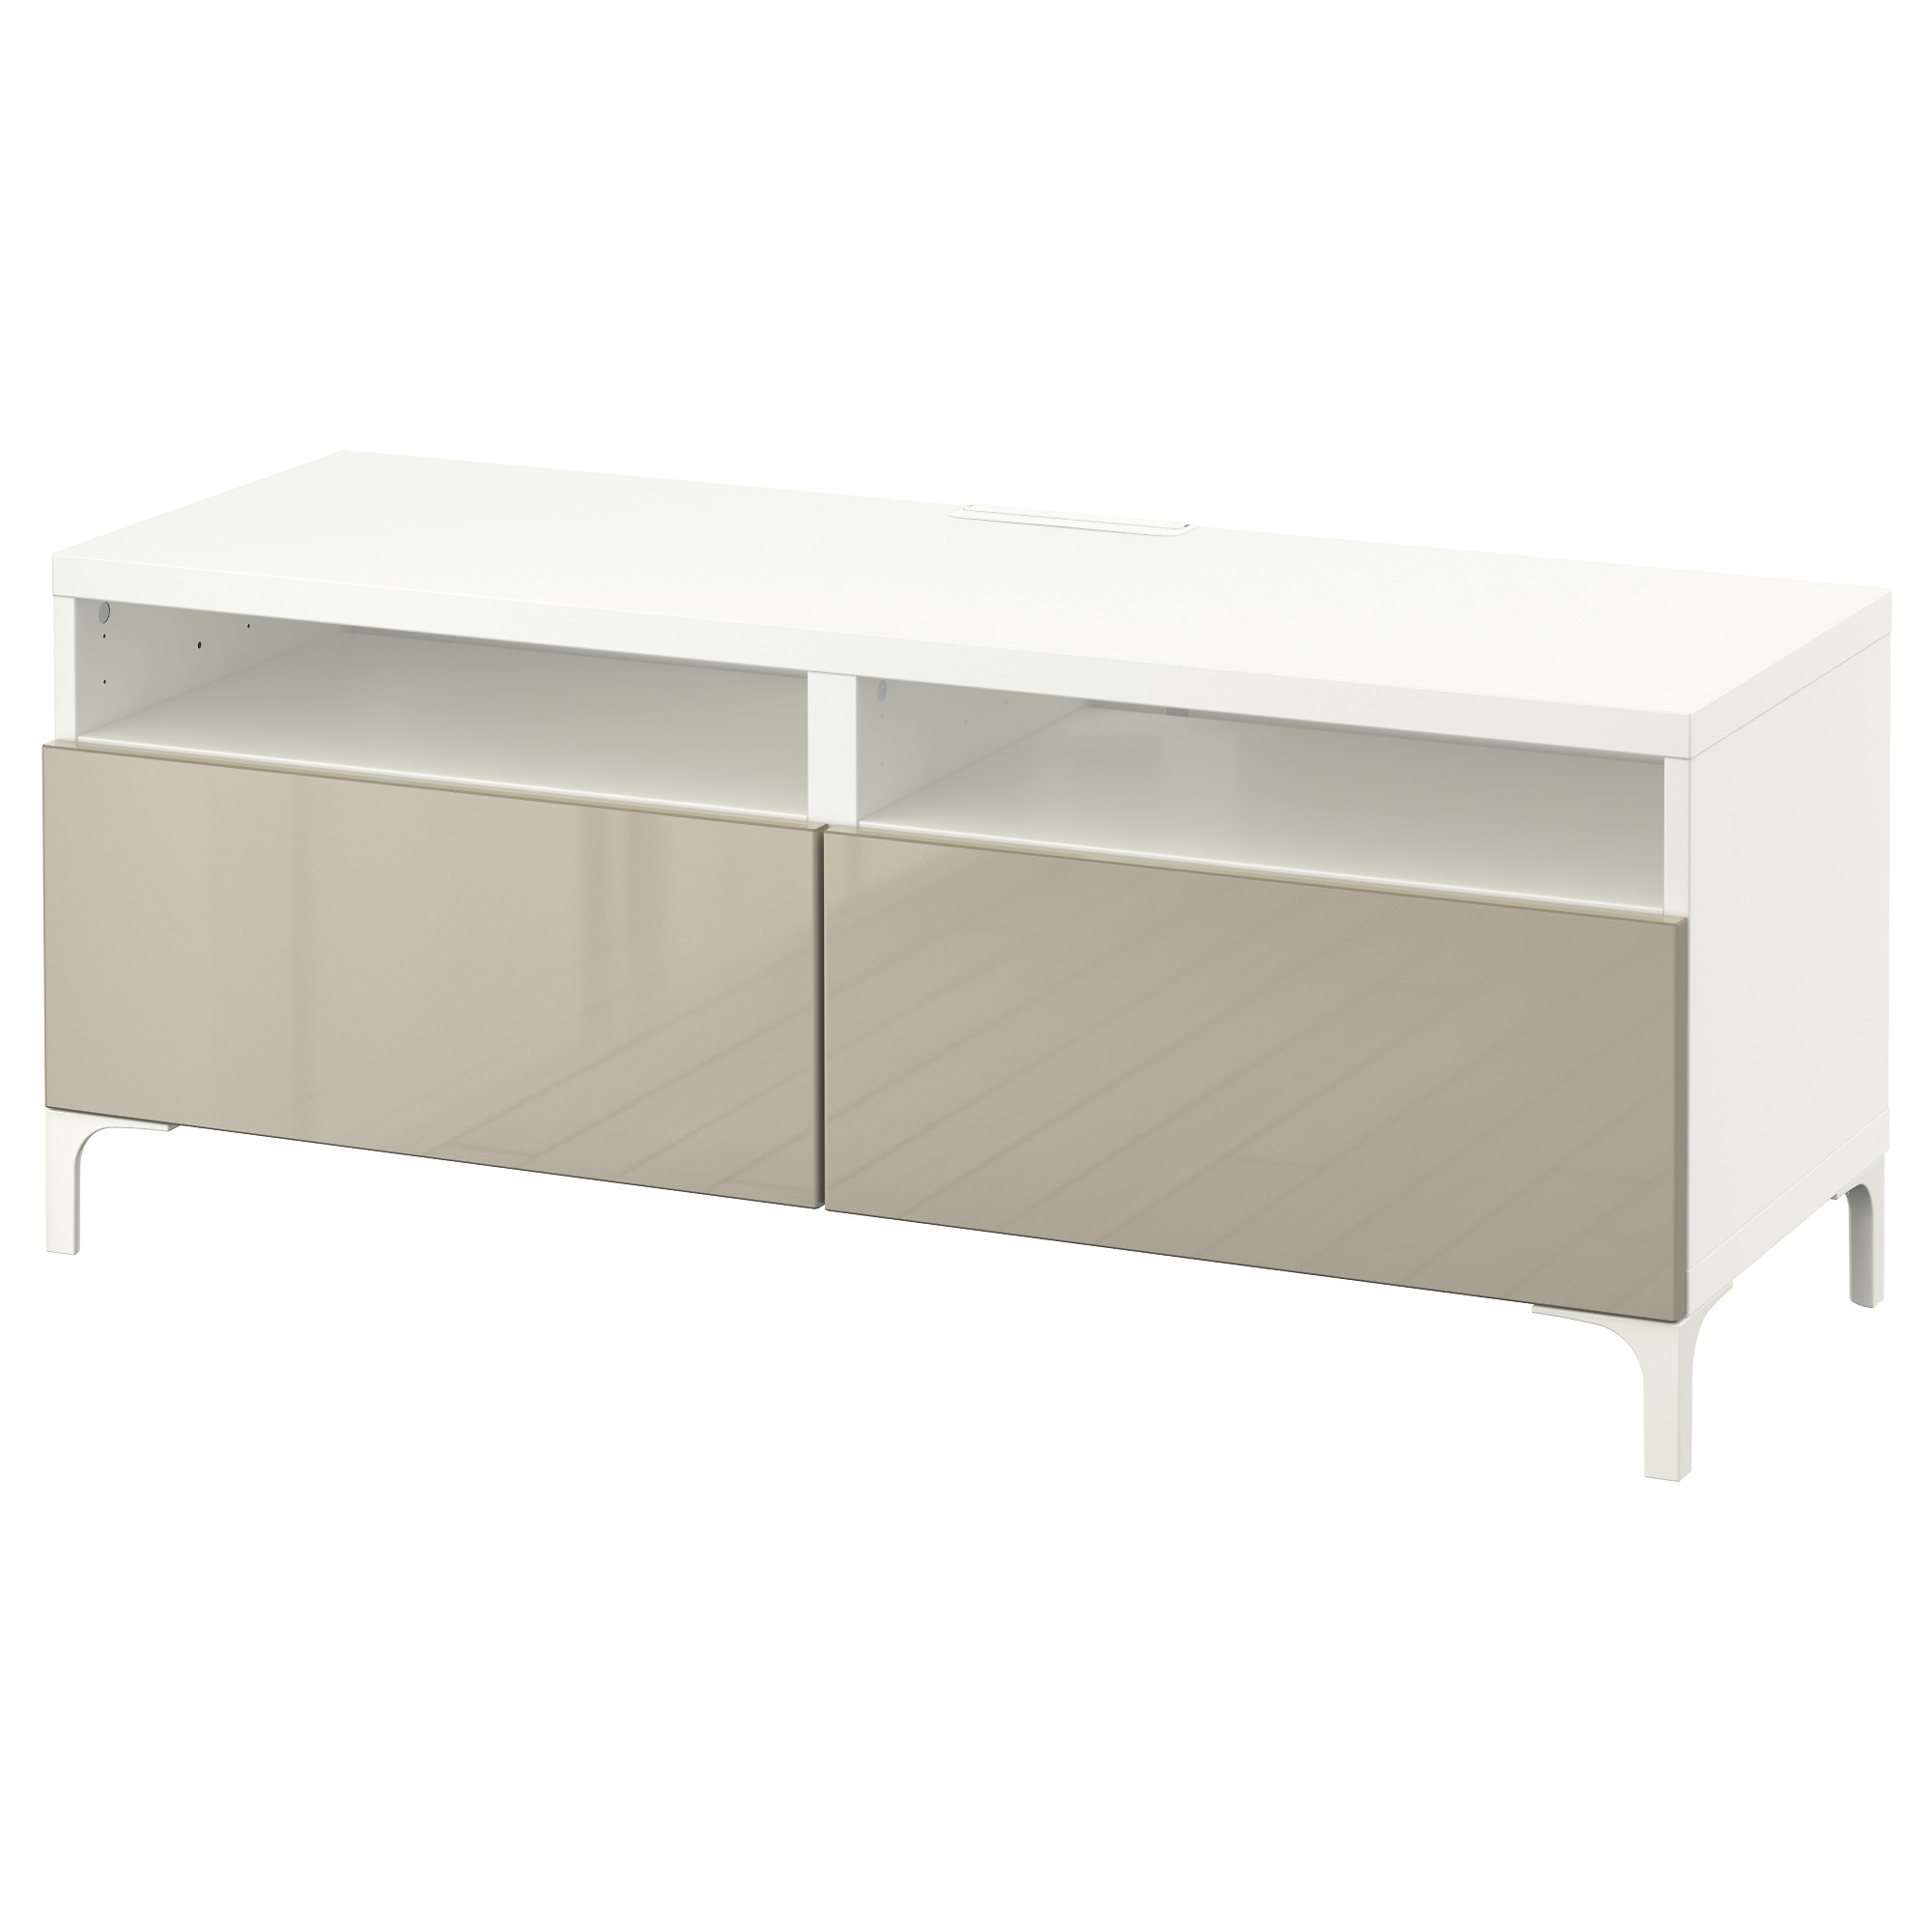 Cube blanc laque ikea hoze home for Table blanc laque ikea